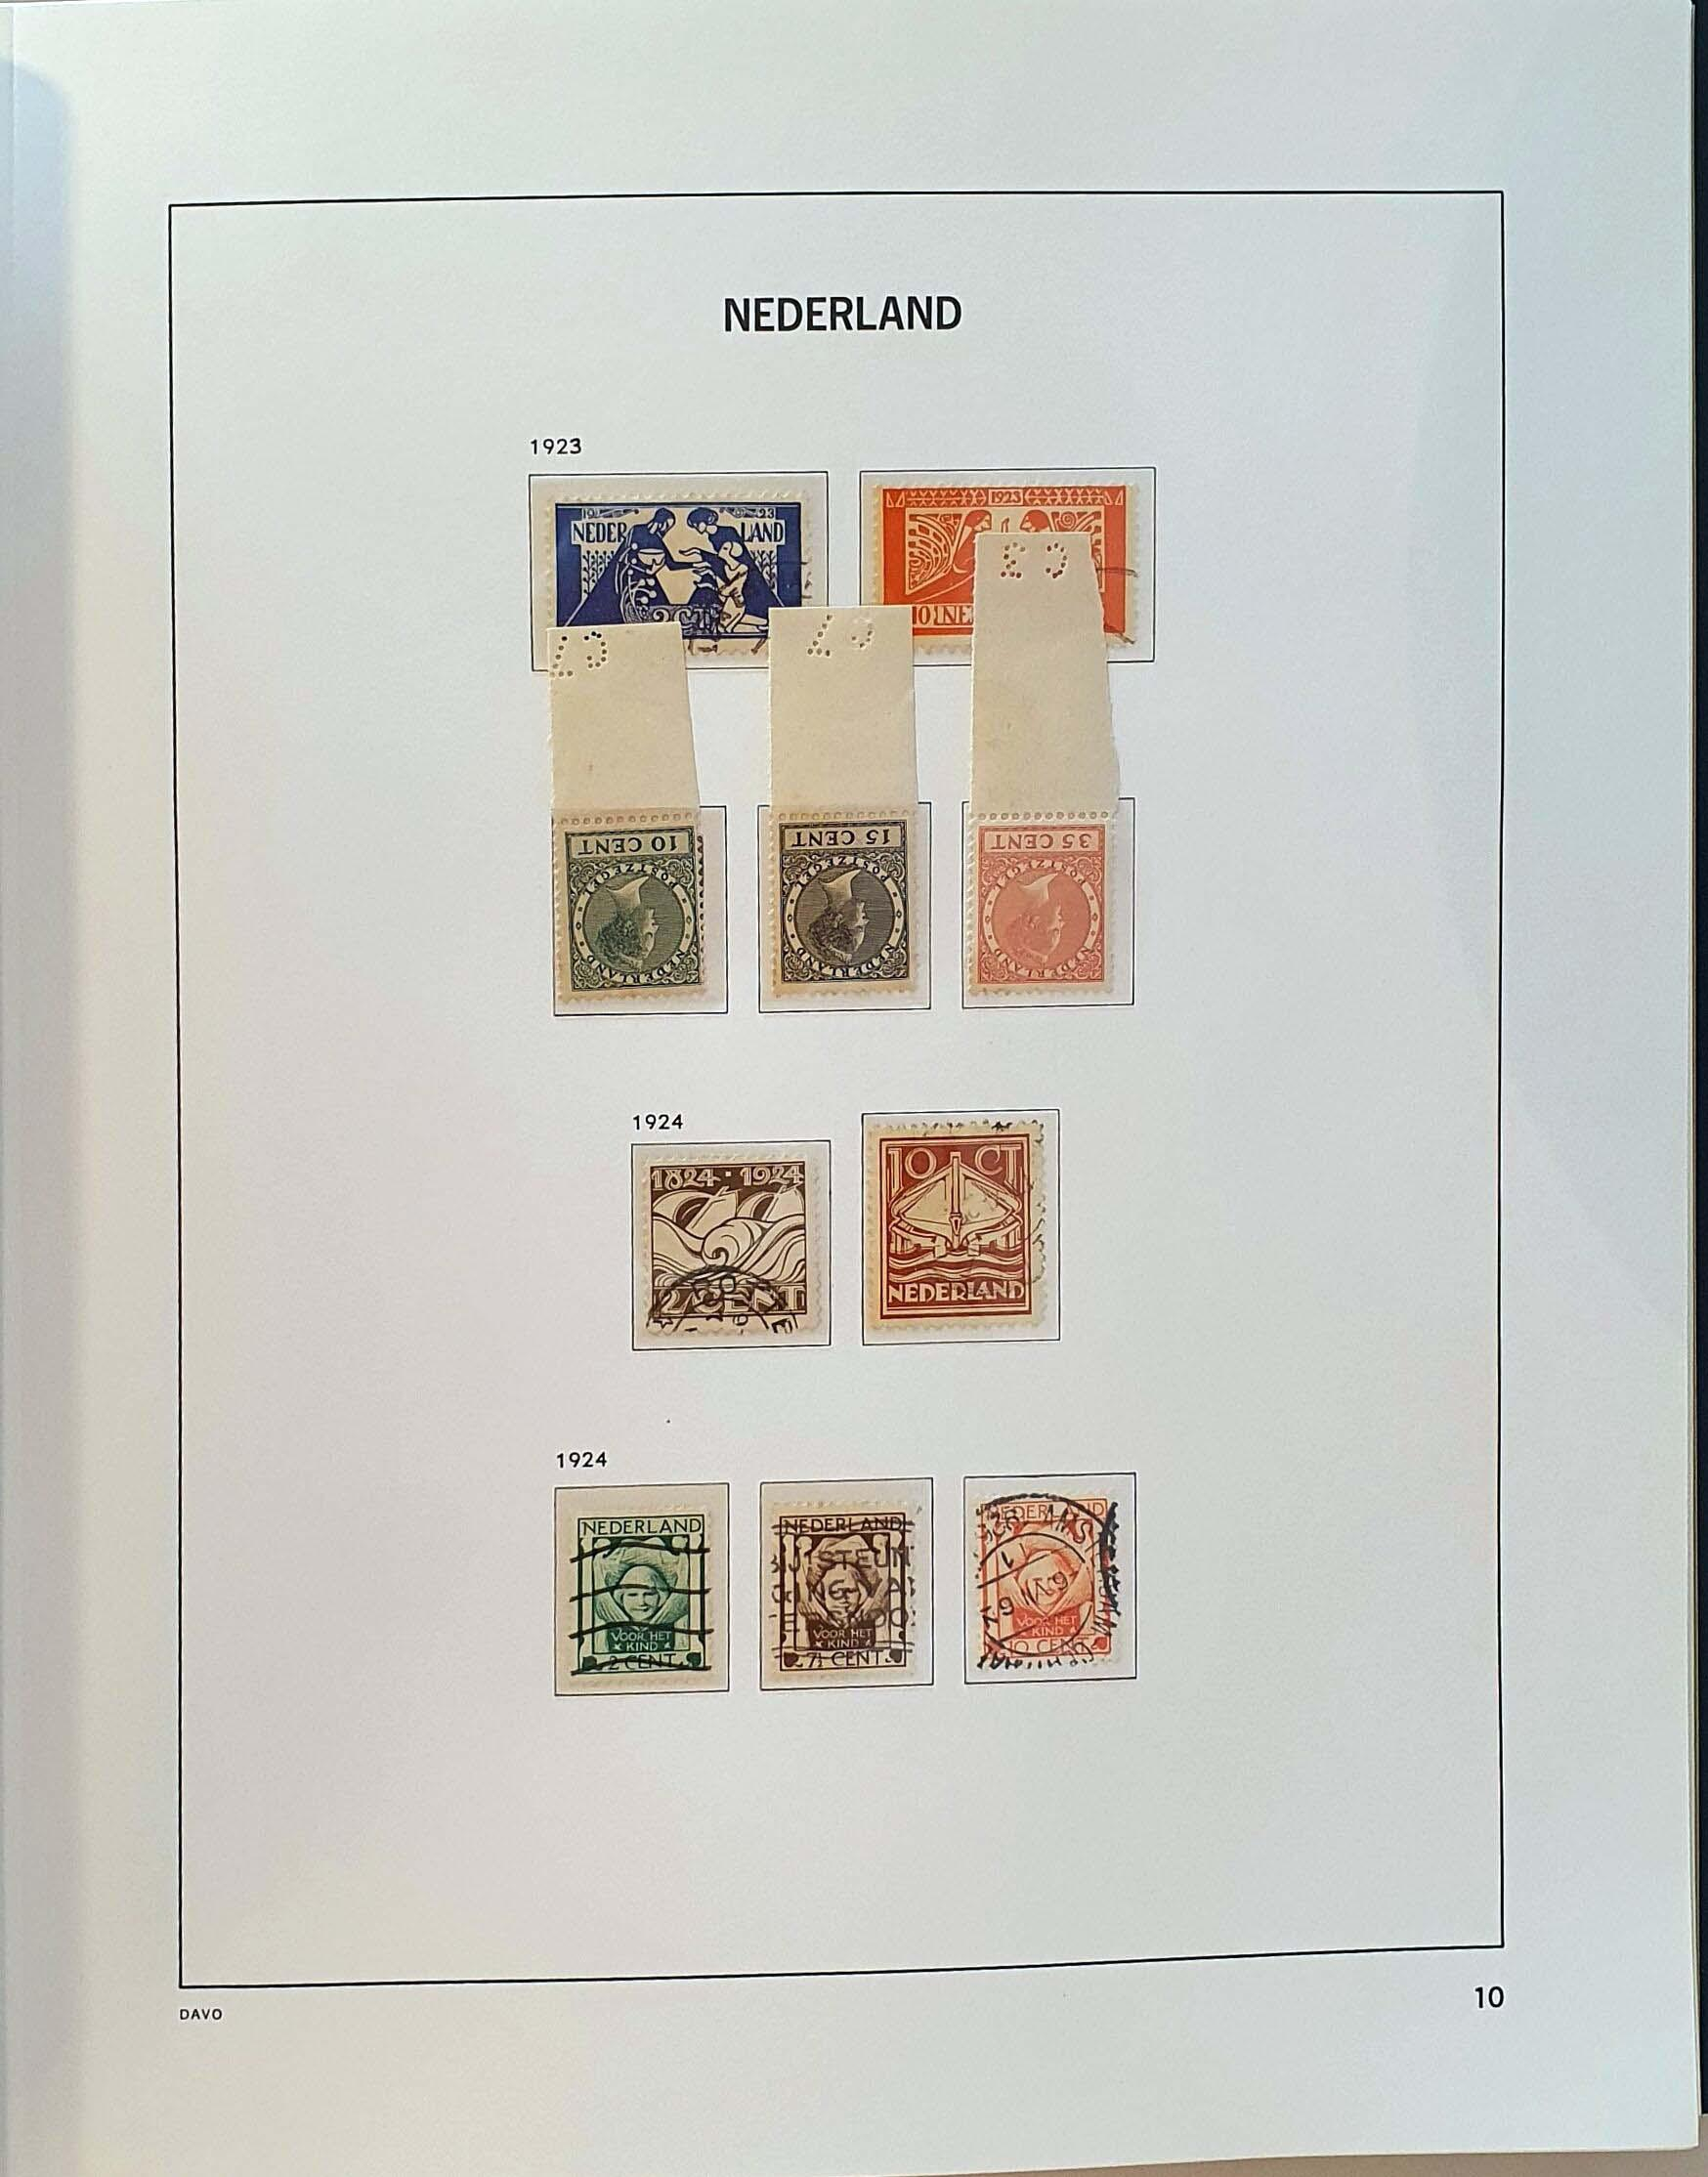 Lot 1658 - Netherlands and former colonies Netherlands -  Corinphila Veilingen Auction 250-253 - Day 2 - Coins, medals, Netherlands and former colonies